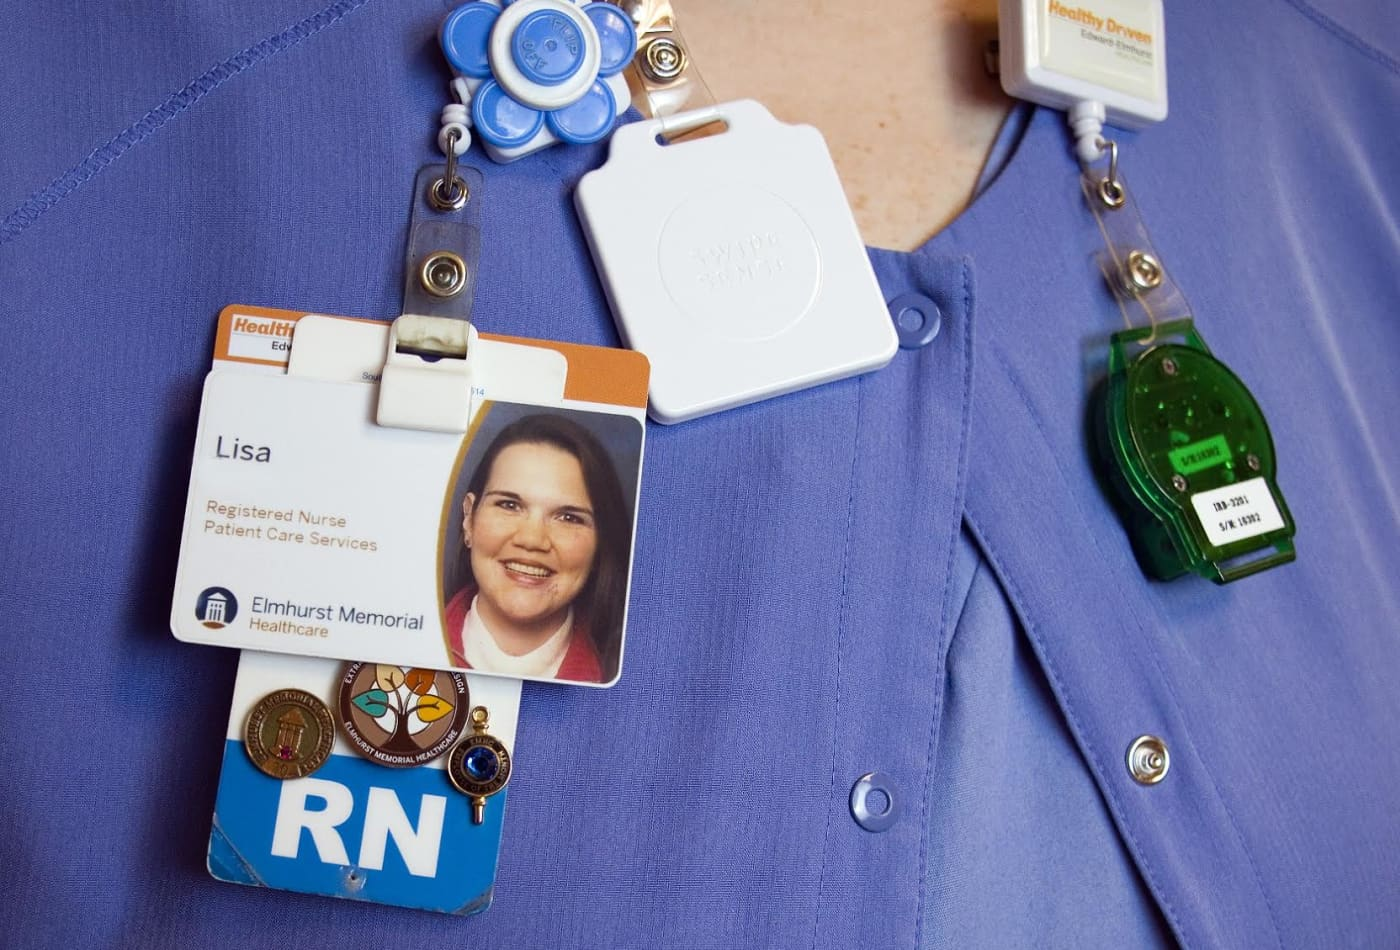 Some hospitals are tracking Covid-19 by adding sensors to employees' badges